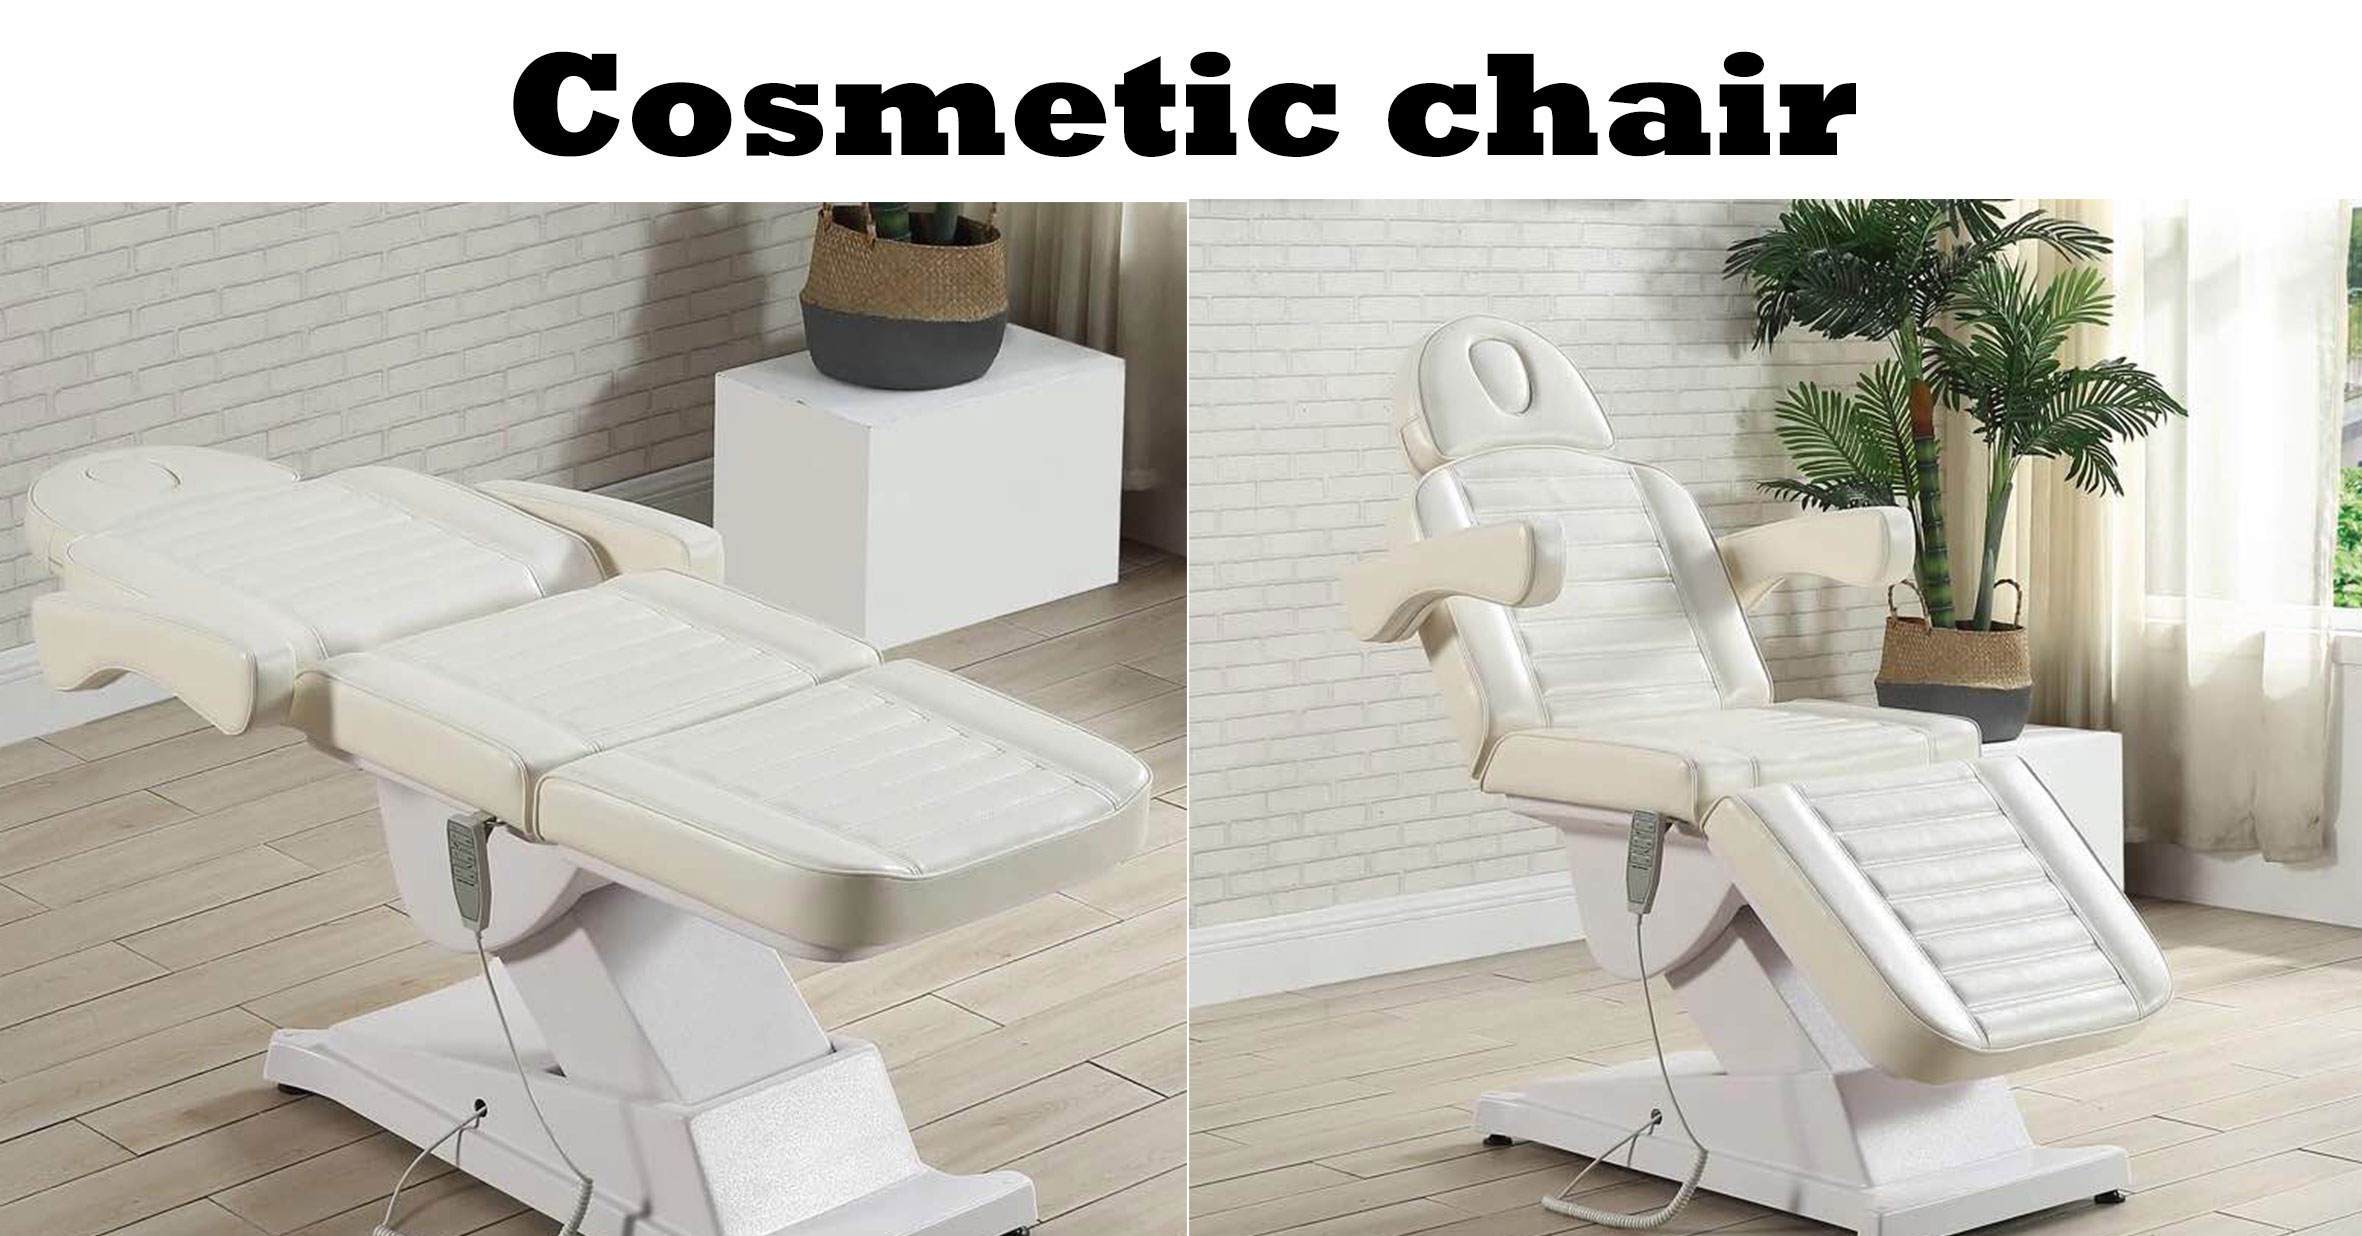 Cosmetic chair